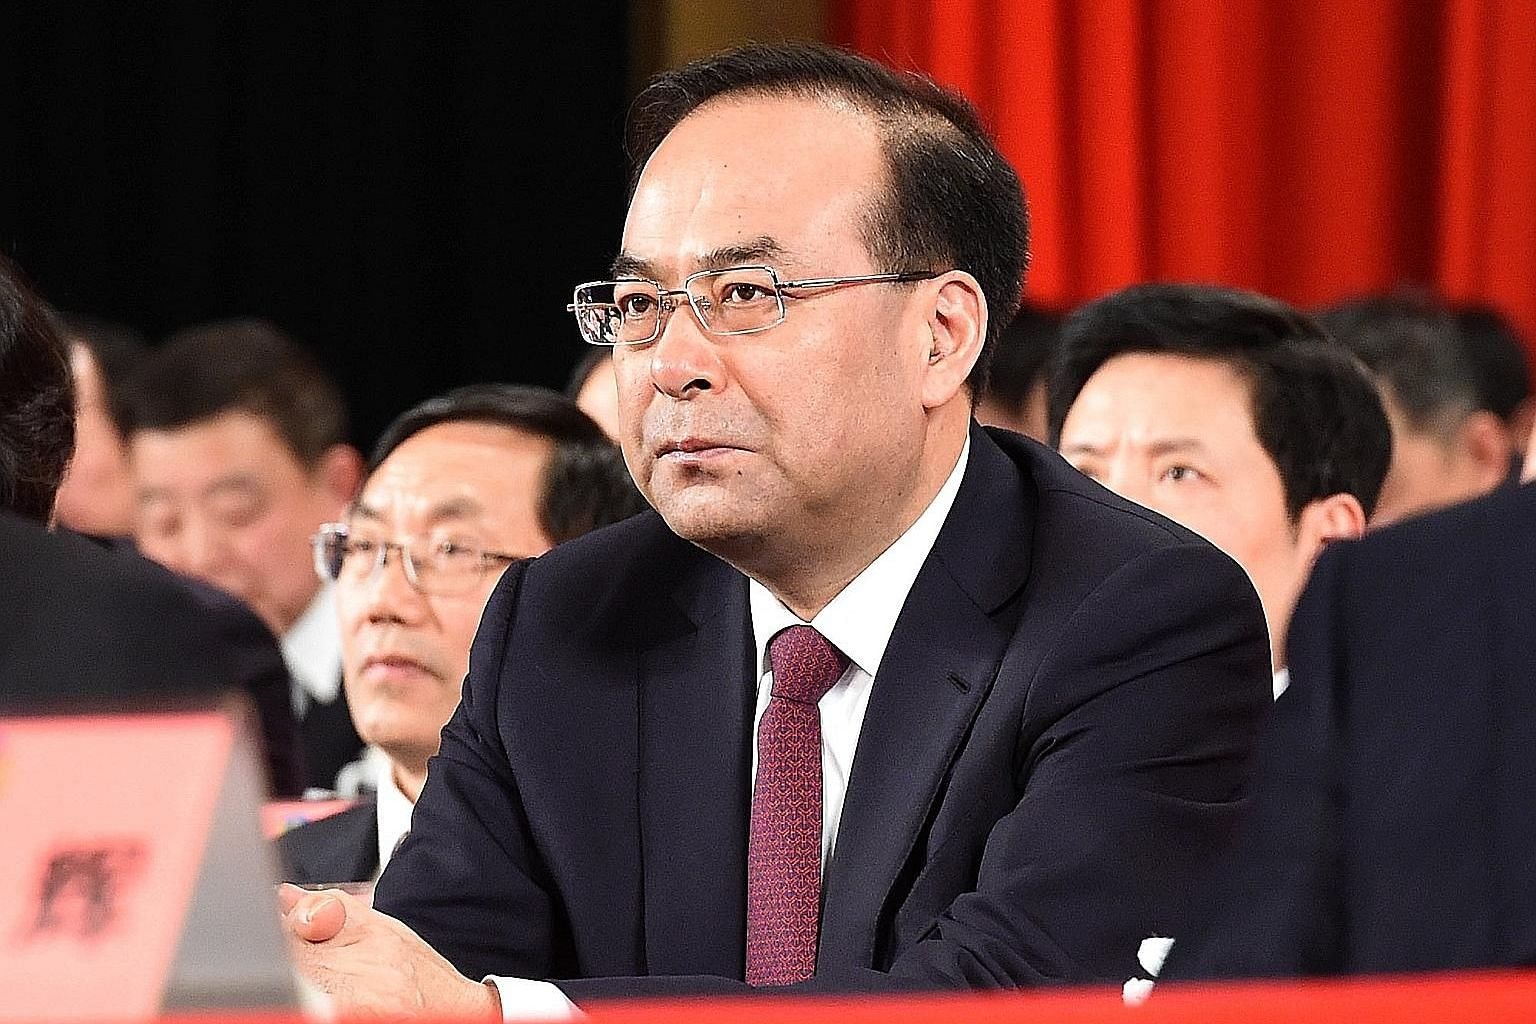 Mr Sun Zhengcai's removal is also a sign that it is yet to be decided who will succeed the leadership led by President Xi Jinping, as the Communist Party gears up for its 19th national congress this autumn.